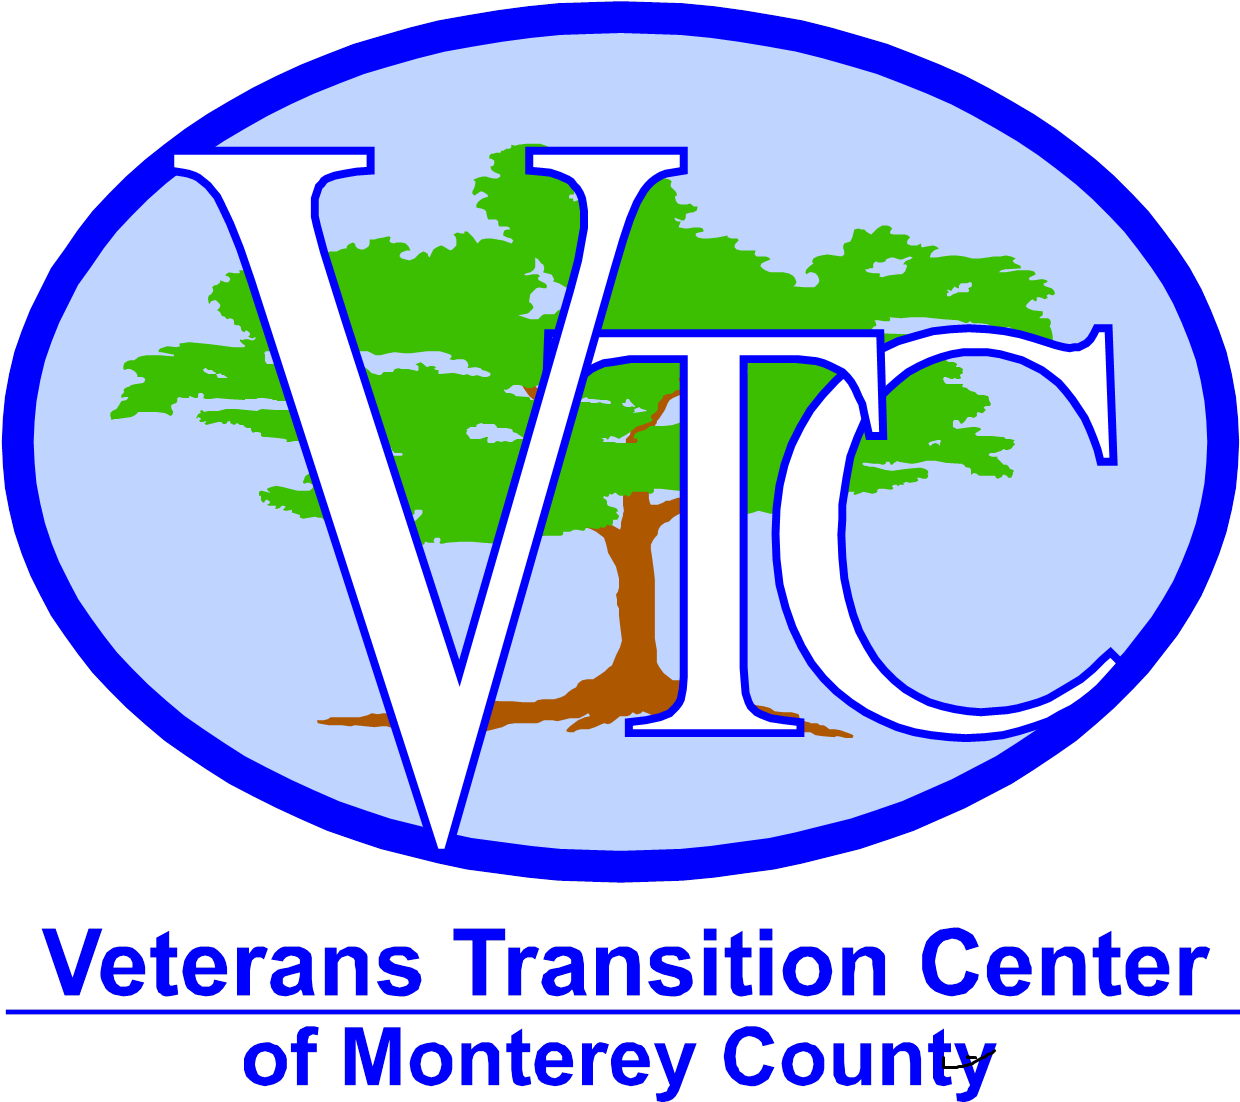 Veterans Transition Center